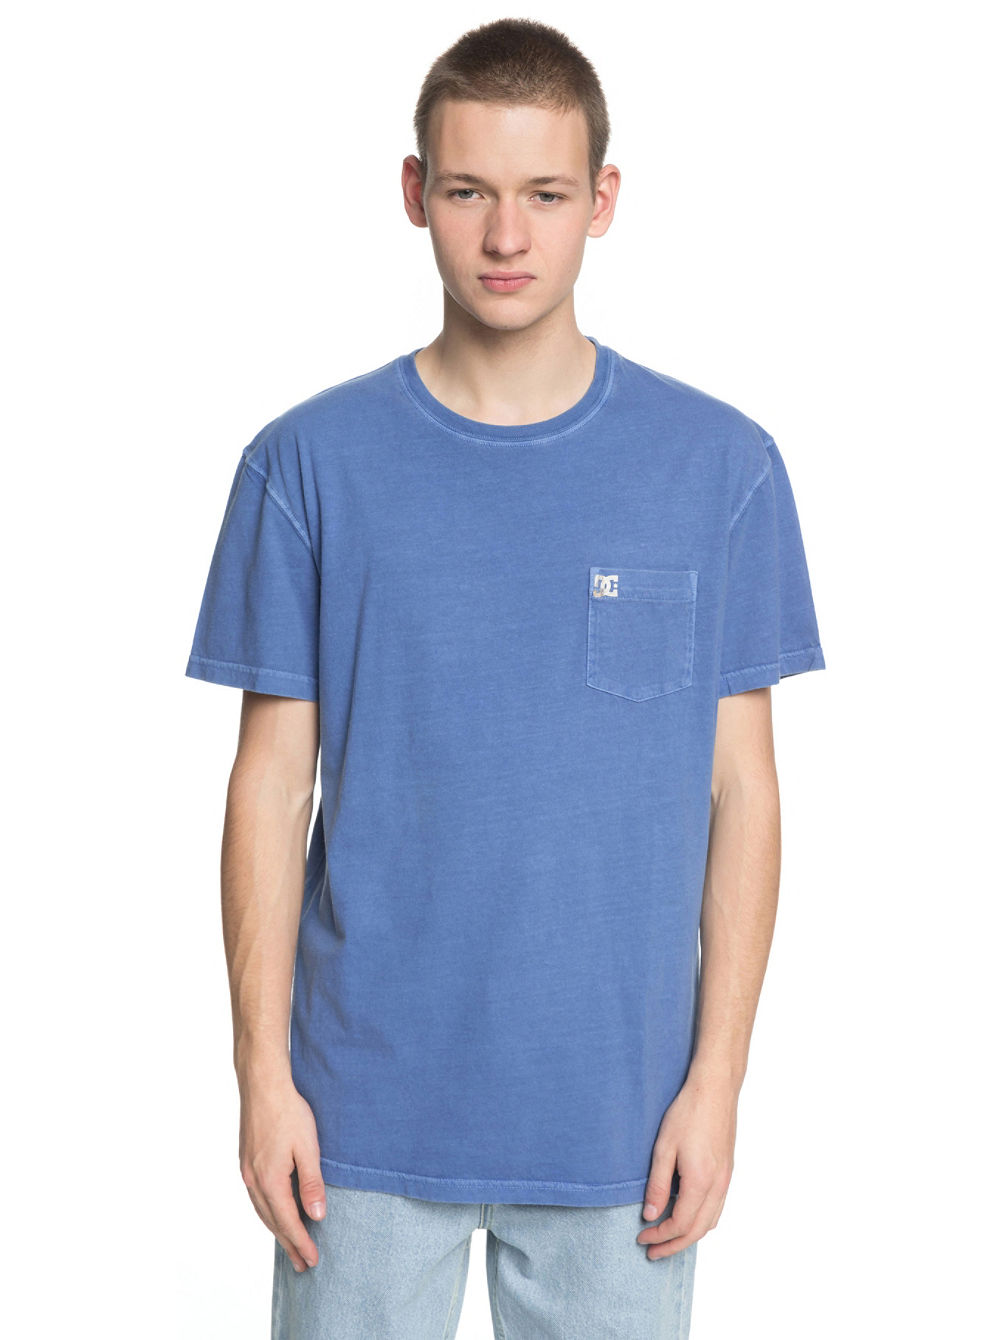 Dyed Pocket Crew T-Shirt